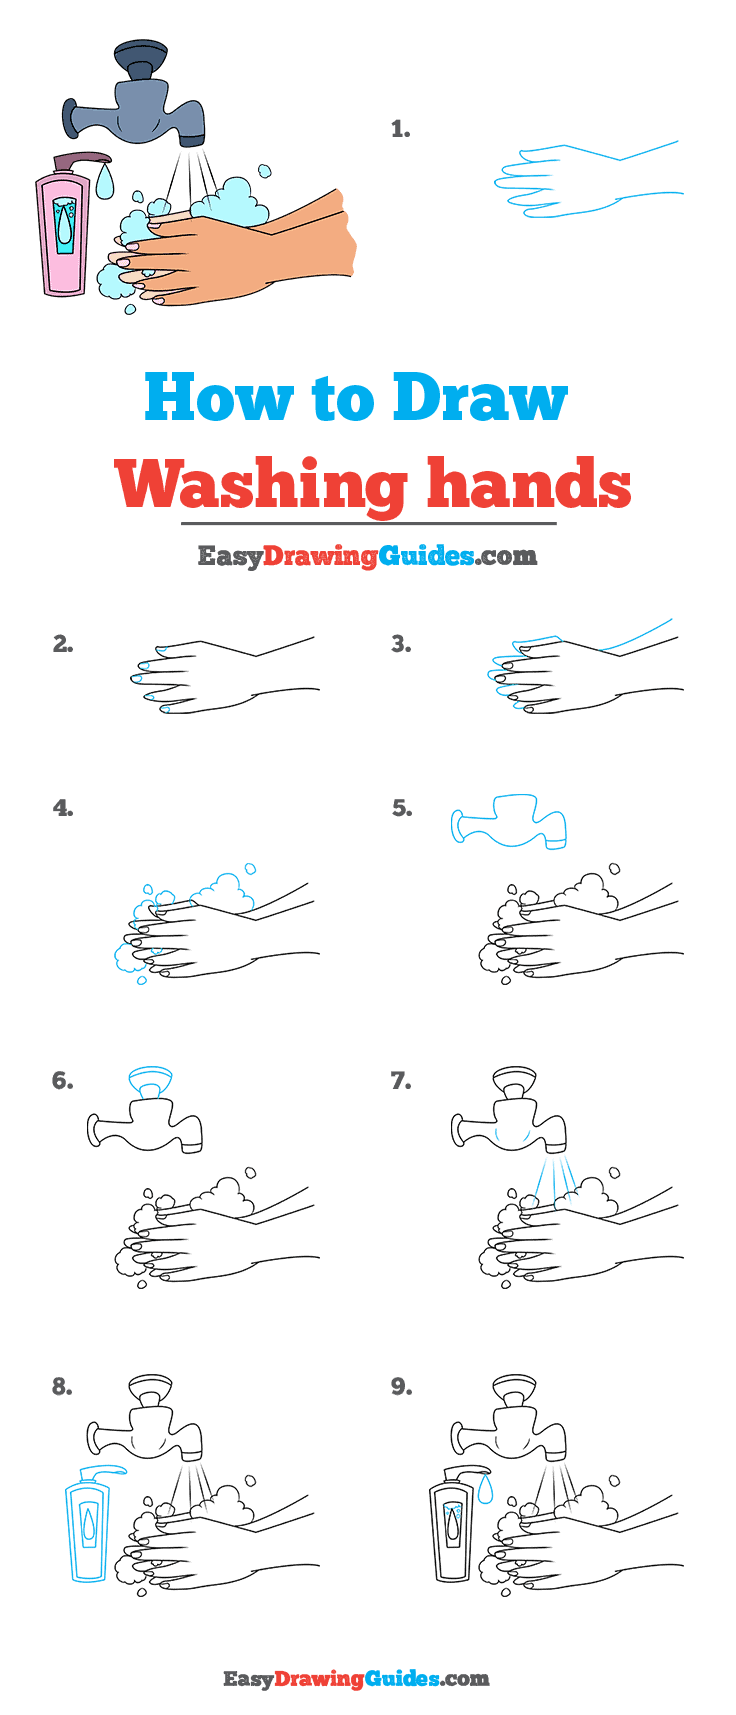 How to Draw Washing Hands